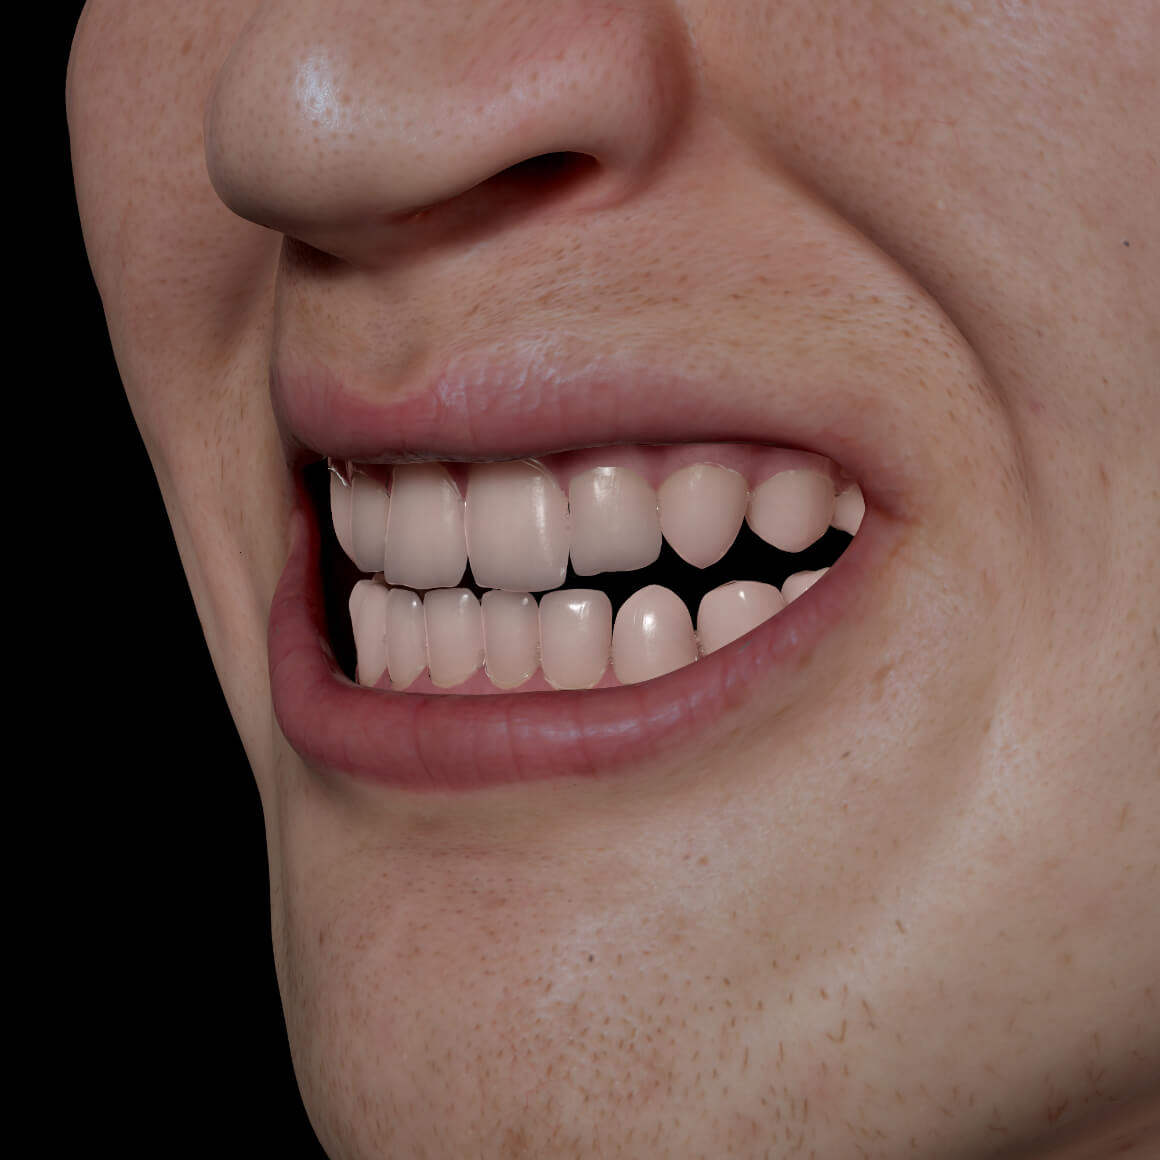 Smile of a Clinique Chloé patient positioned at an angle showing white teeth after a teeth whitening treatment